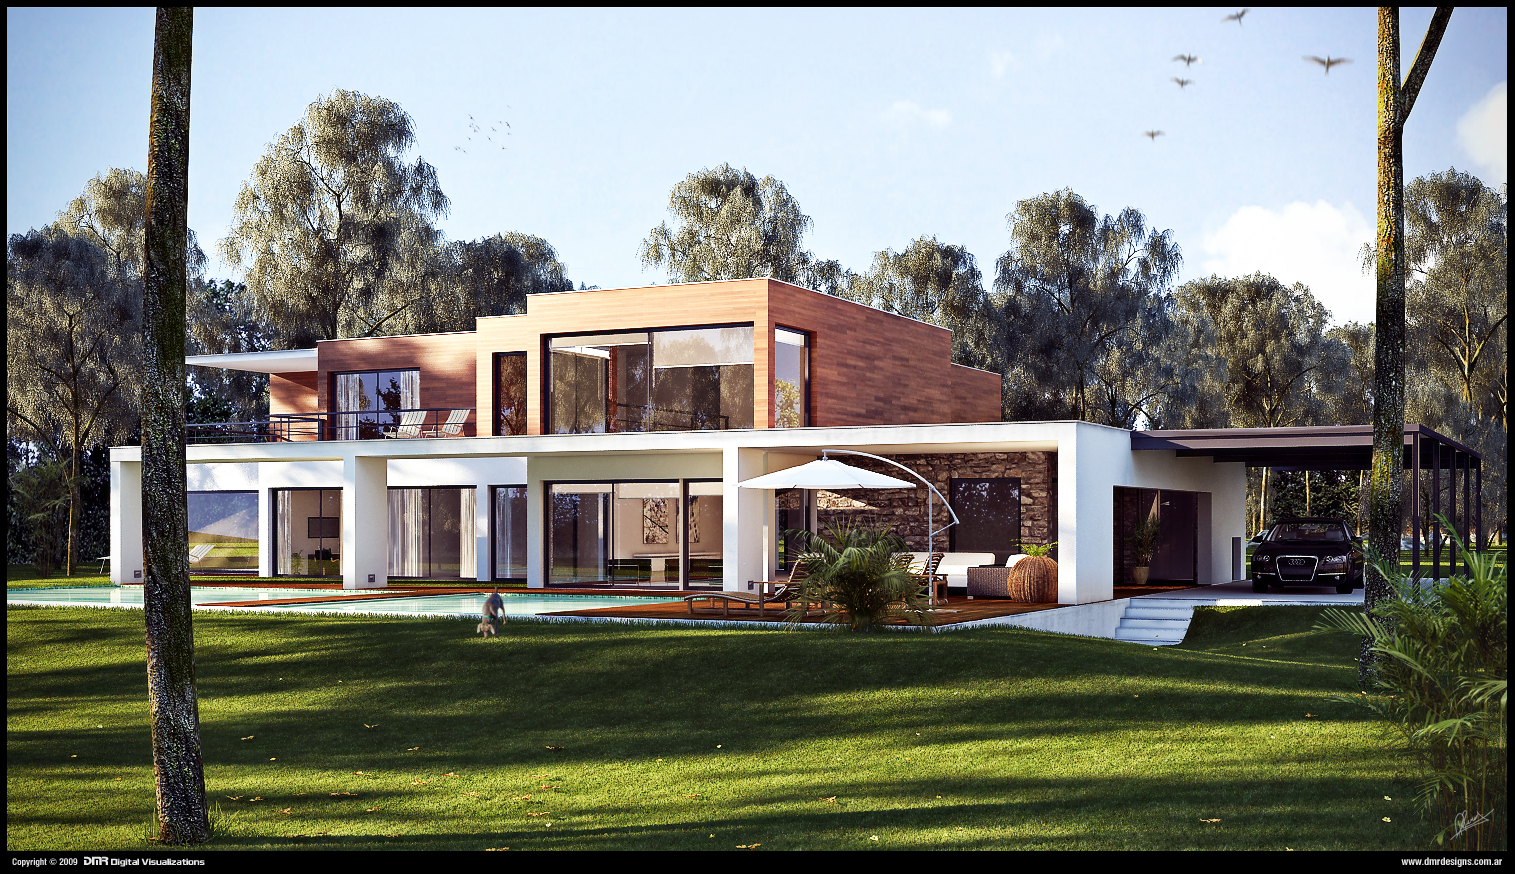 Modern house wip 2 by diegoreales on deviantart for Modern a frame house